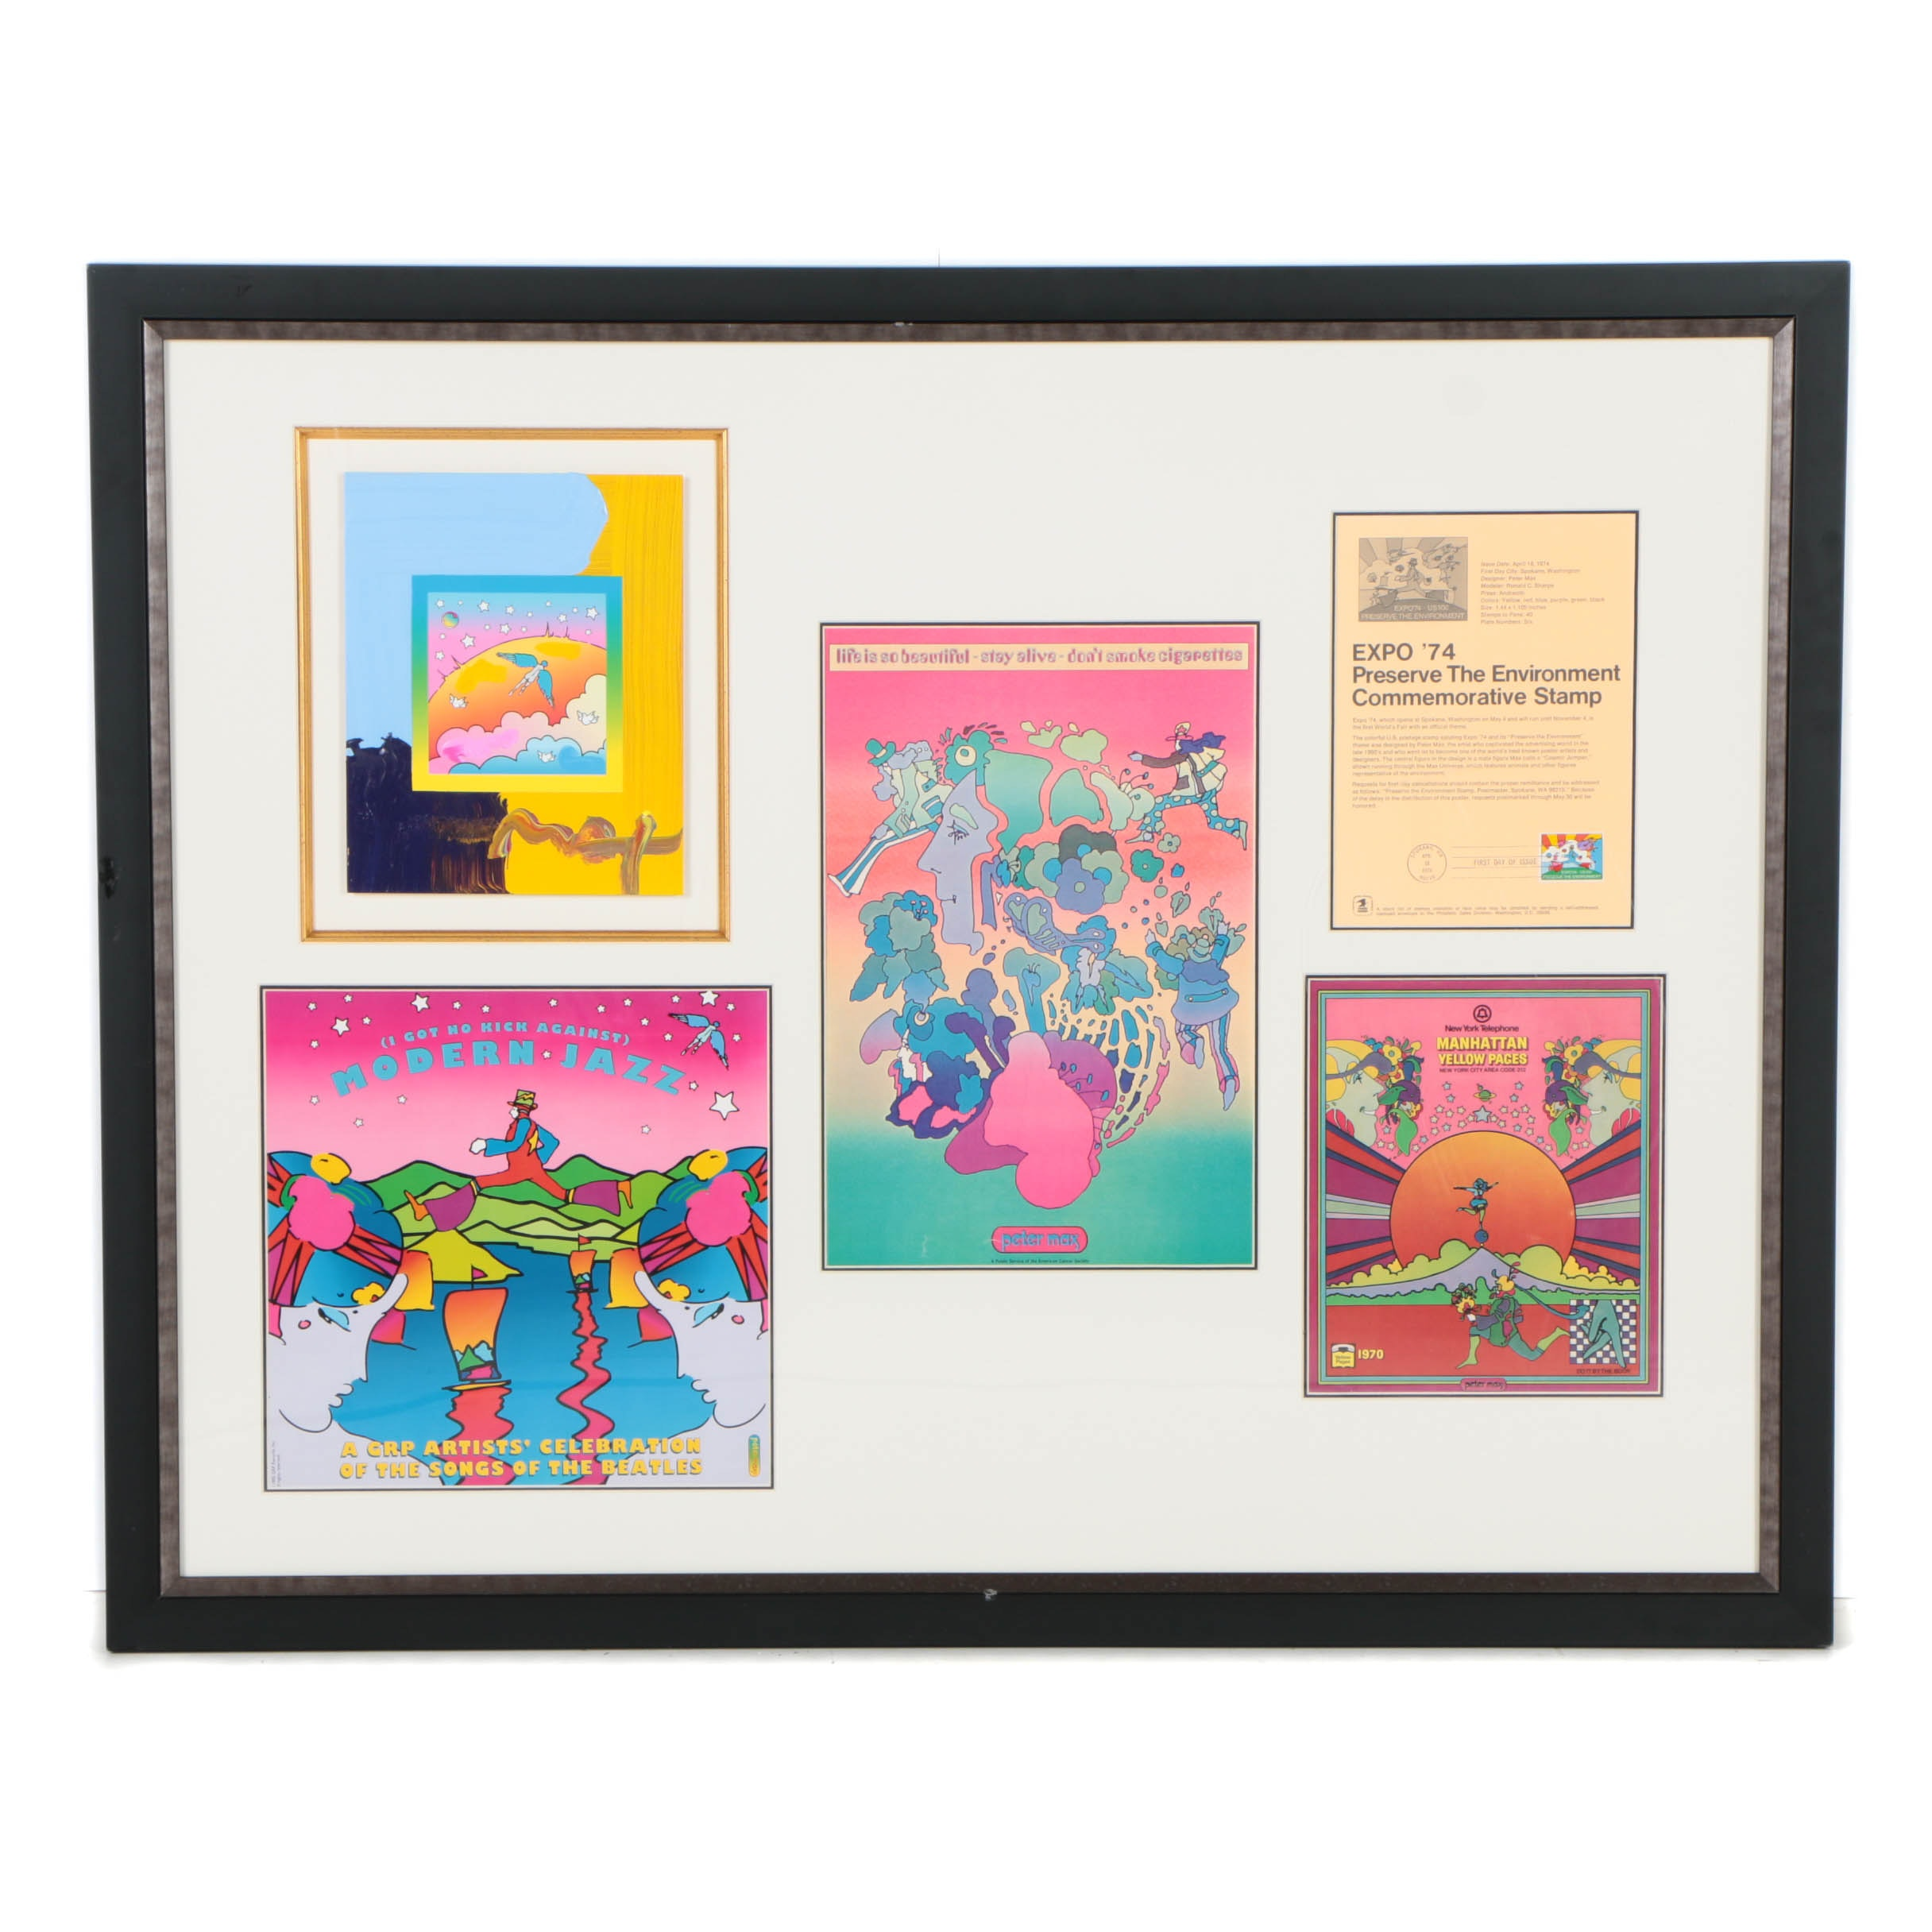 Peter Max Mixed Media Collage on Paper with Stamp and Posters